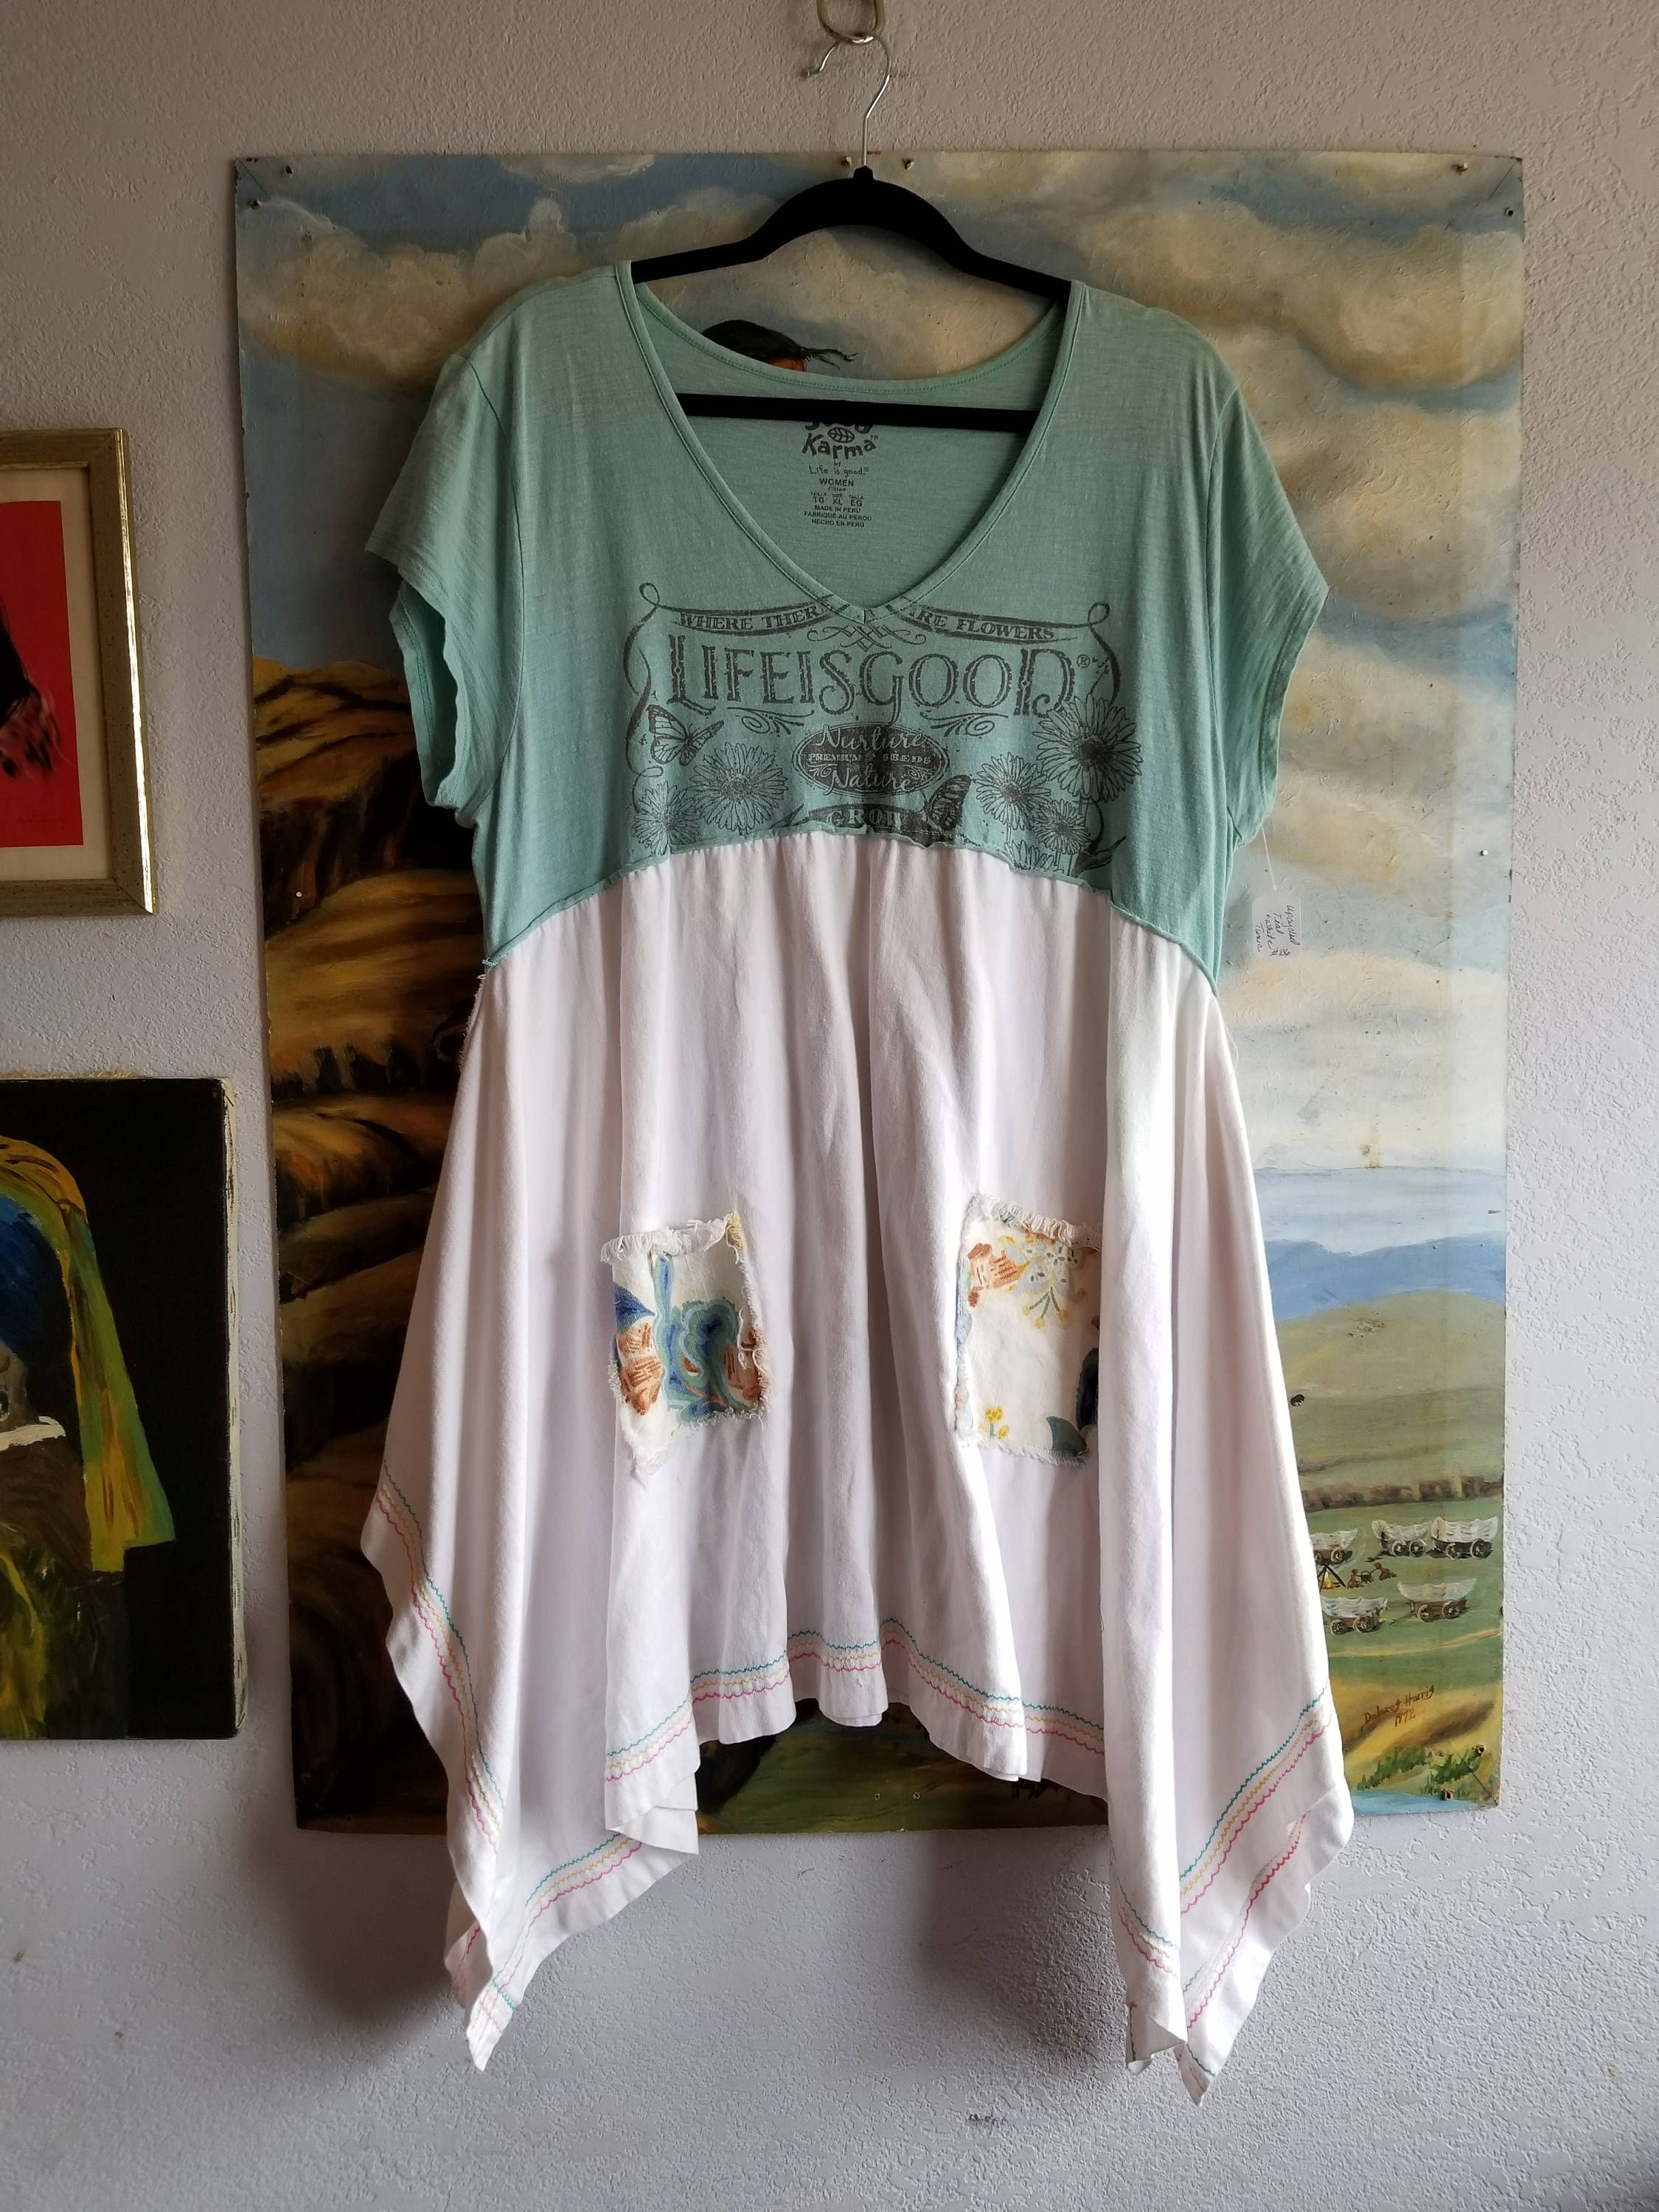 XL Life is Good Up-Cycled T-Shirt Dress or Tunic - Whimsical